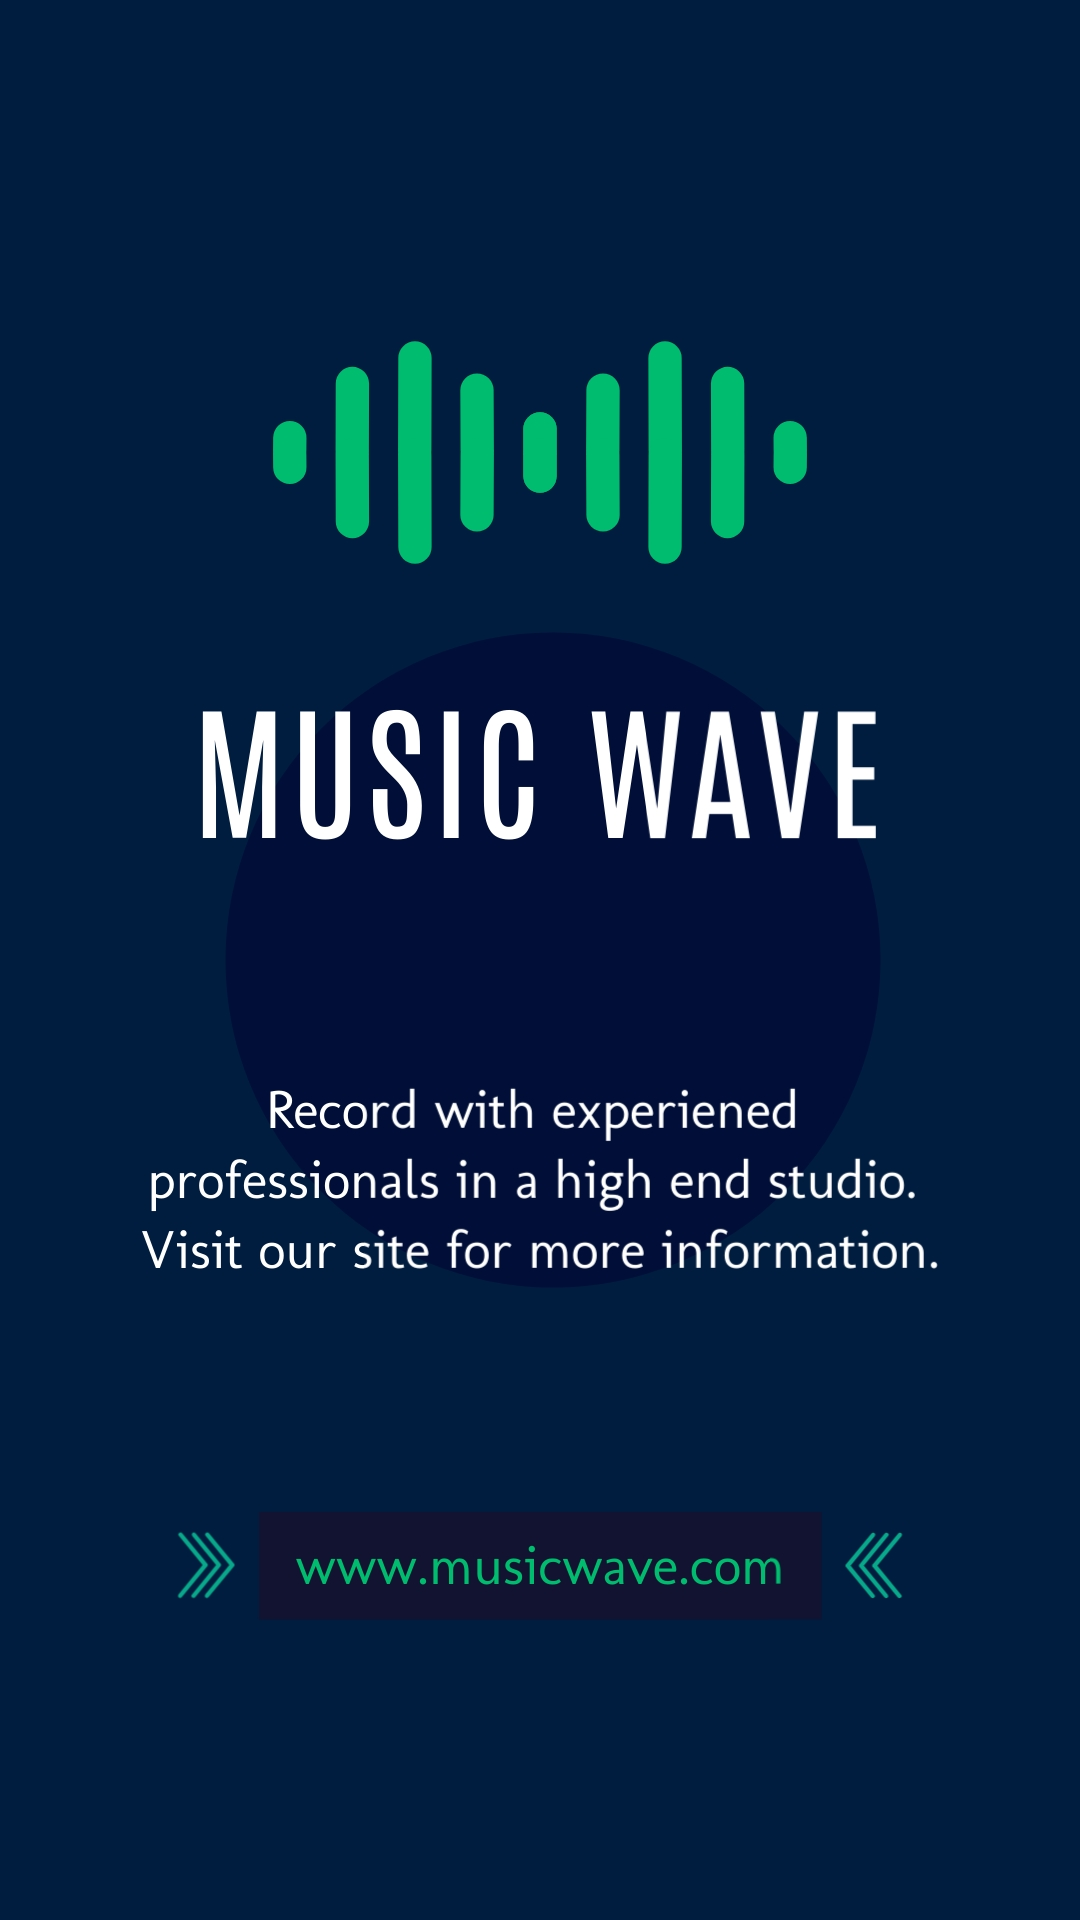 Music Wave Vertical Template